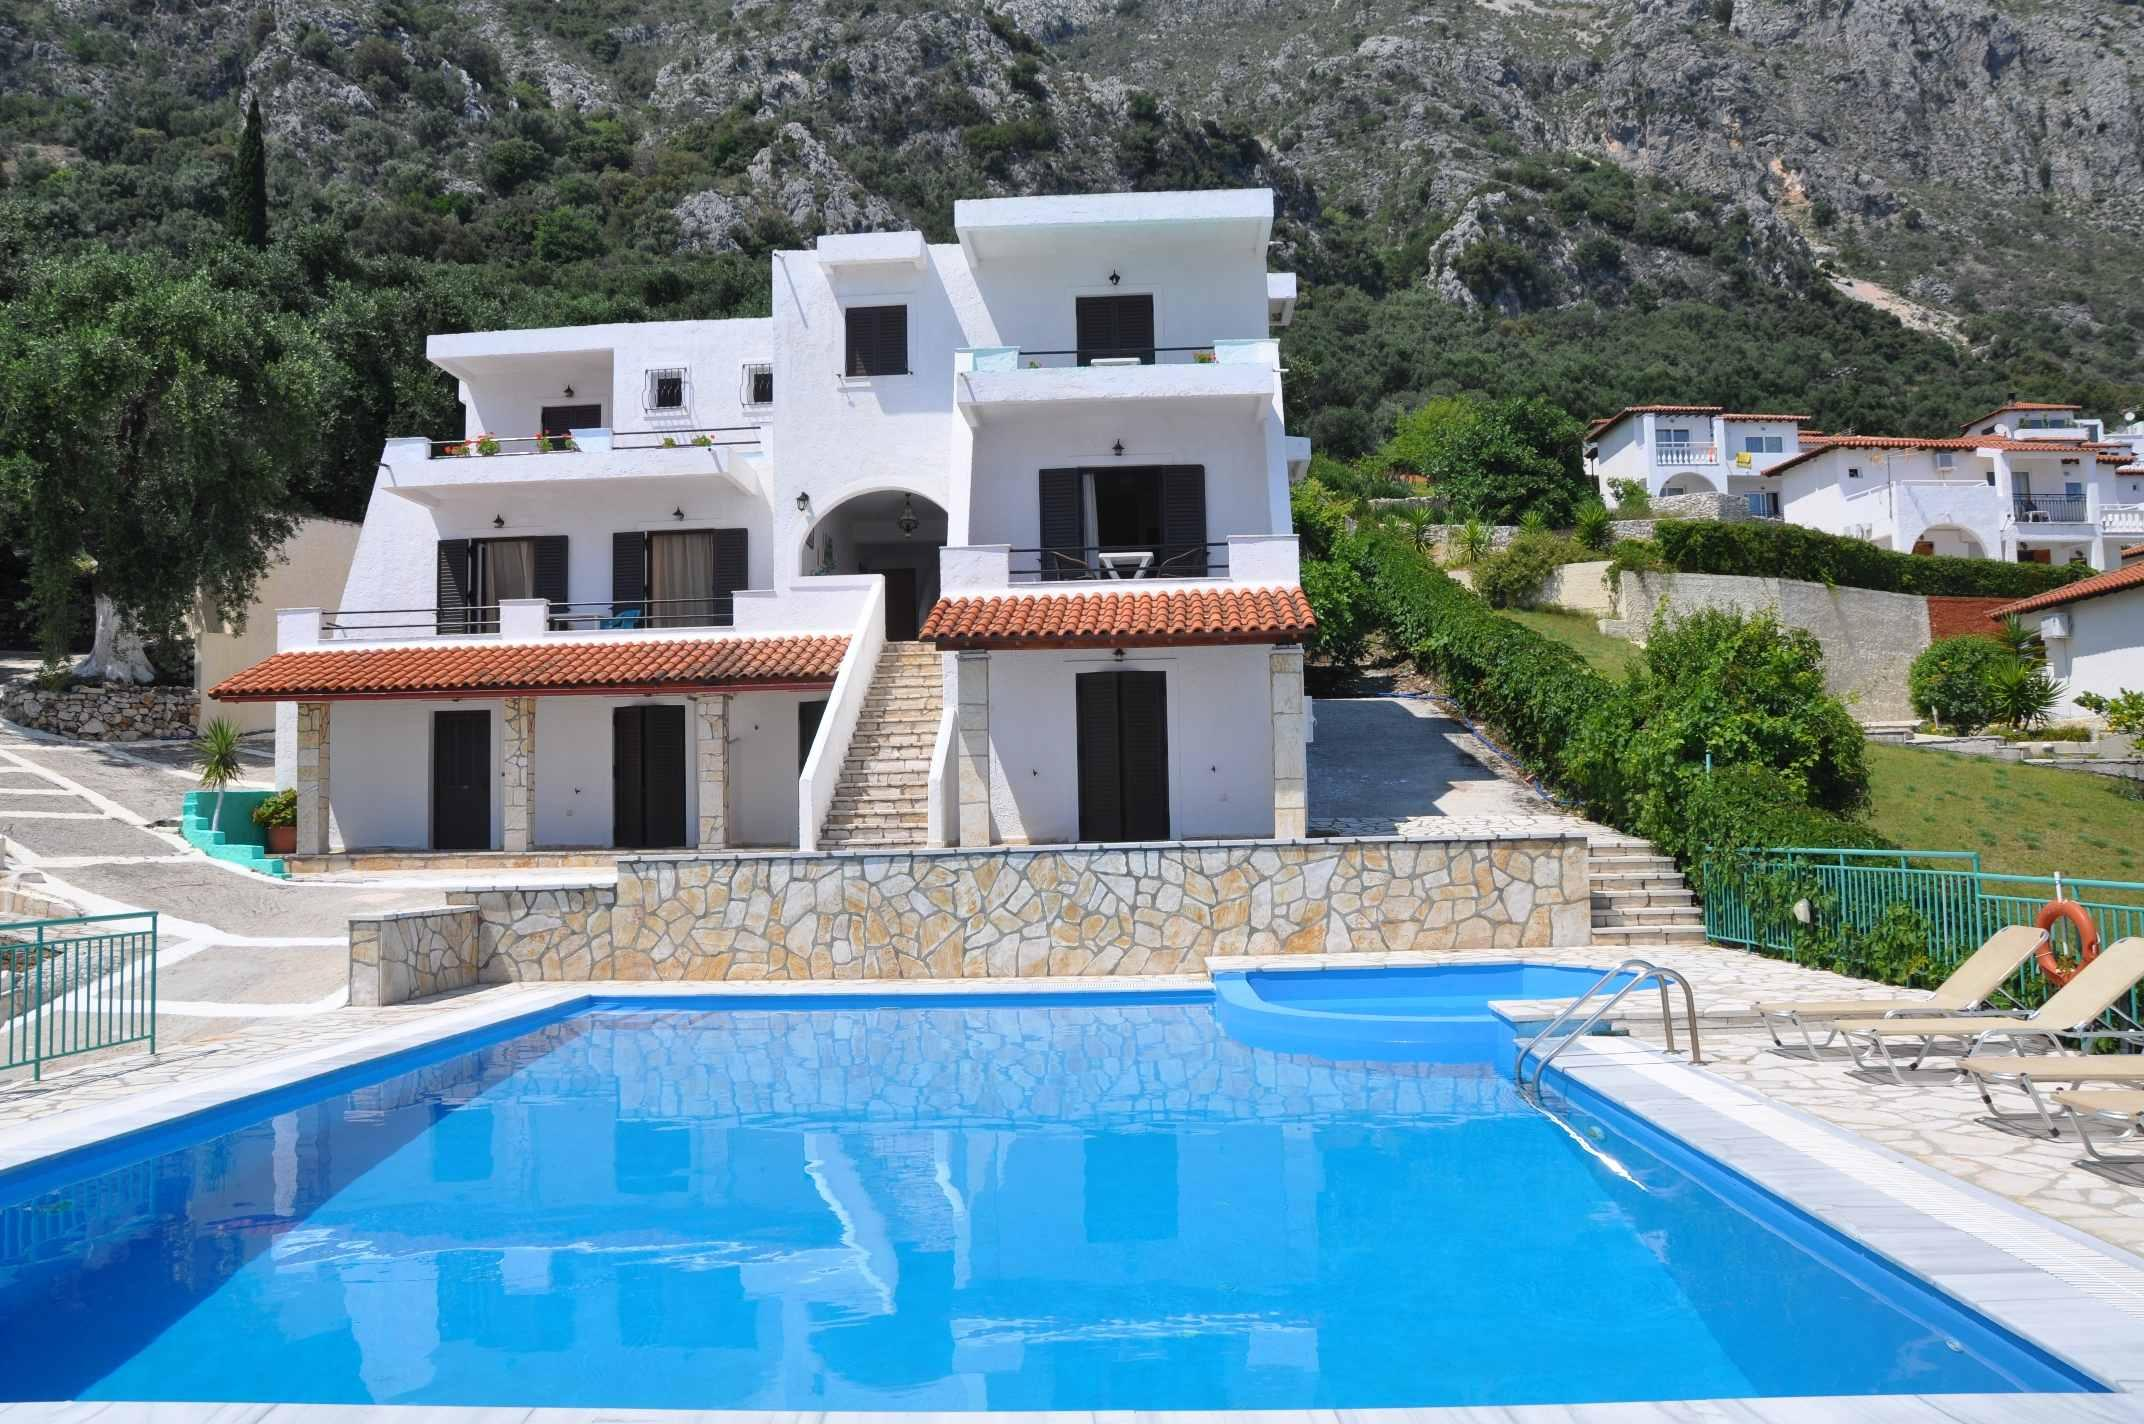 Holidays at Yannis Barbati Apartments in Barbati, Corfu